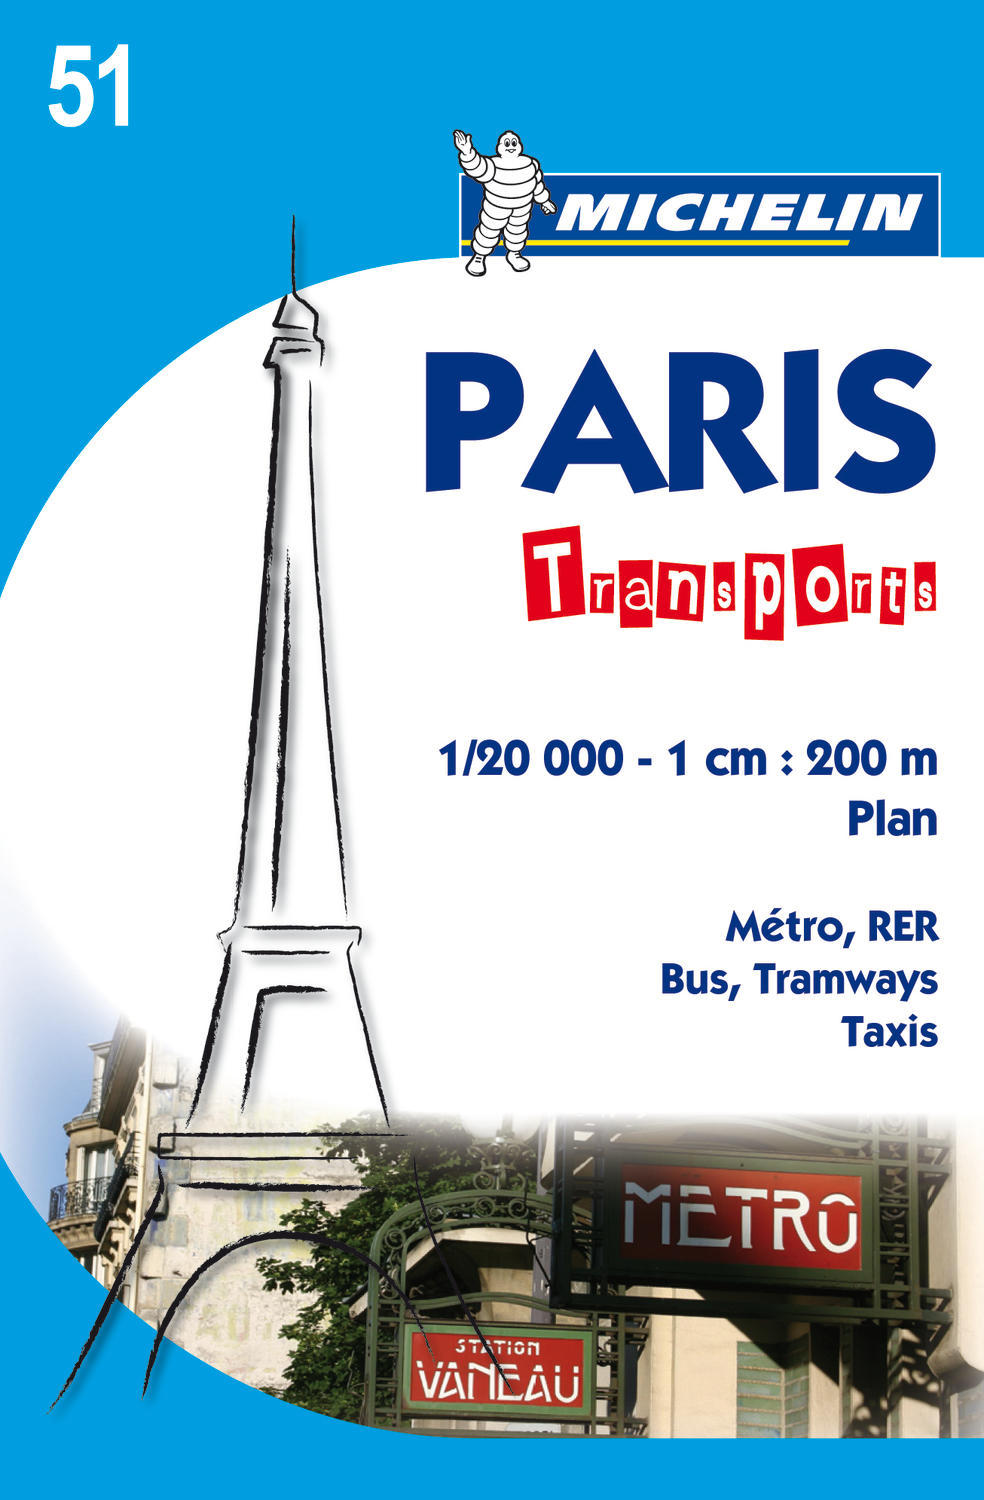 PARIS TRANSPORTS - PLAN